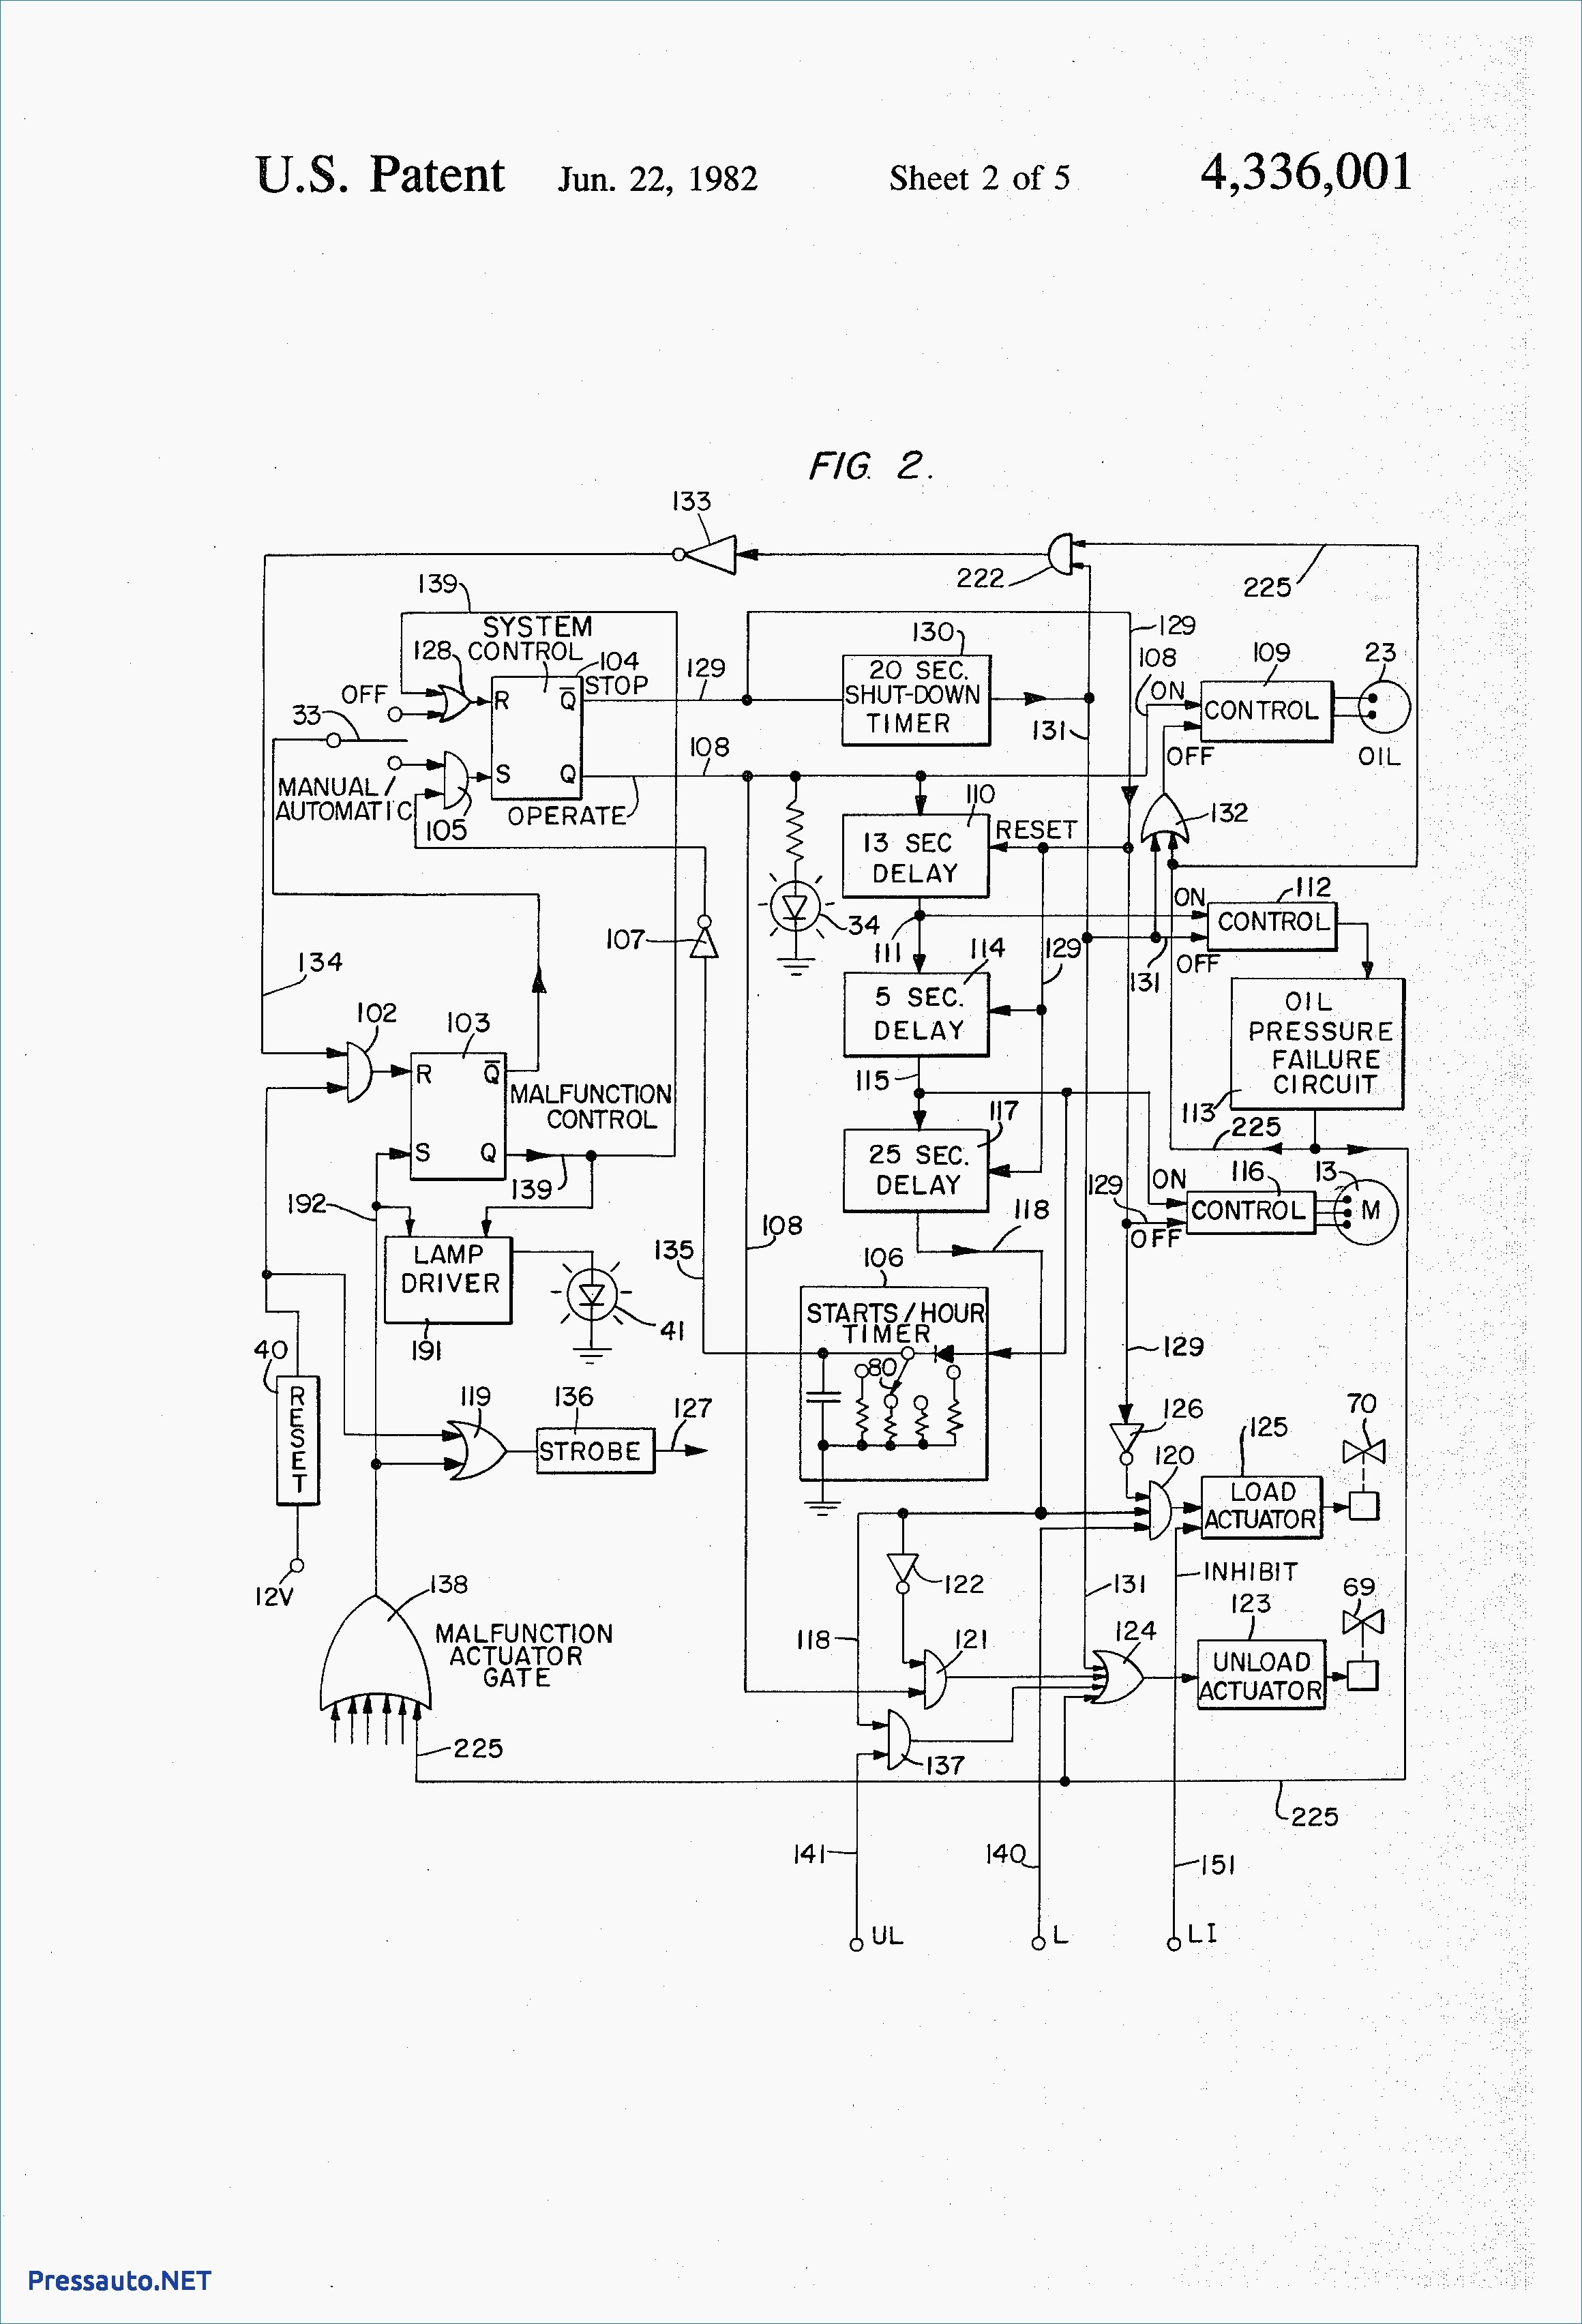 DIAGRAM] Atlas Copco Generator Wiring Diagram FULL Version HD Quality Wiring  Diagram - SHOETFUSE7253.FUJIYA.ITshoetfuse7253.fujiya.it